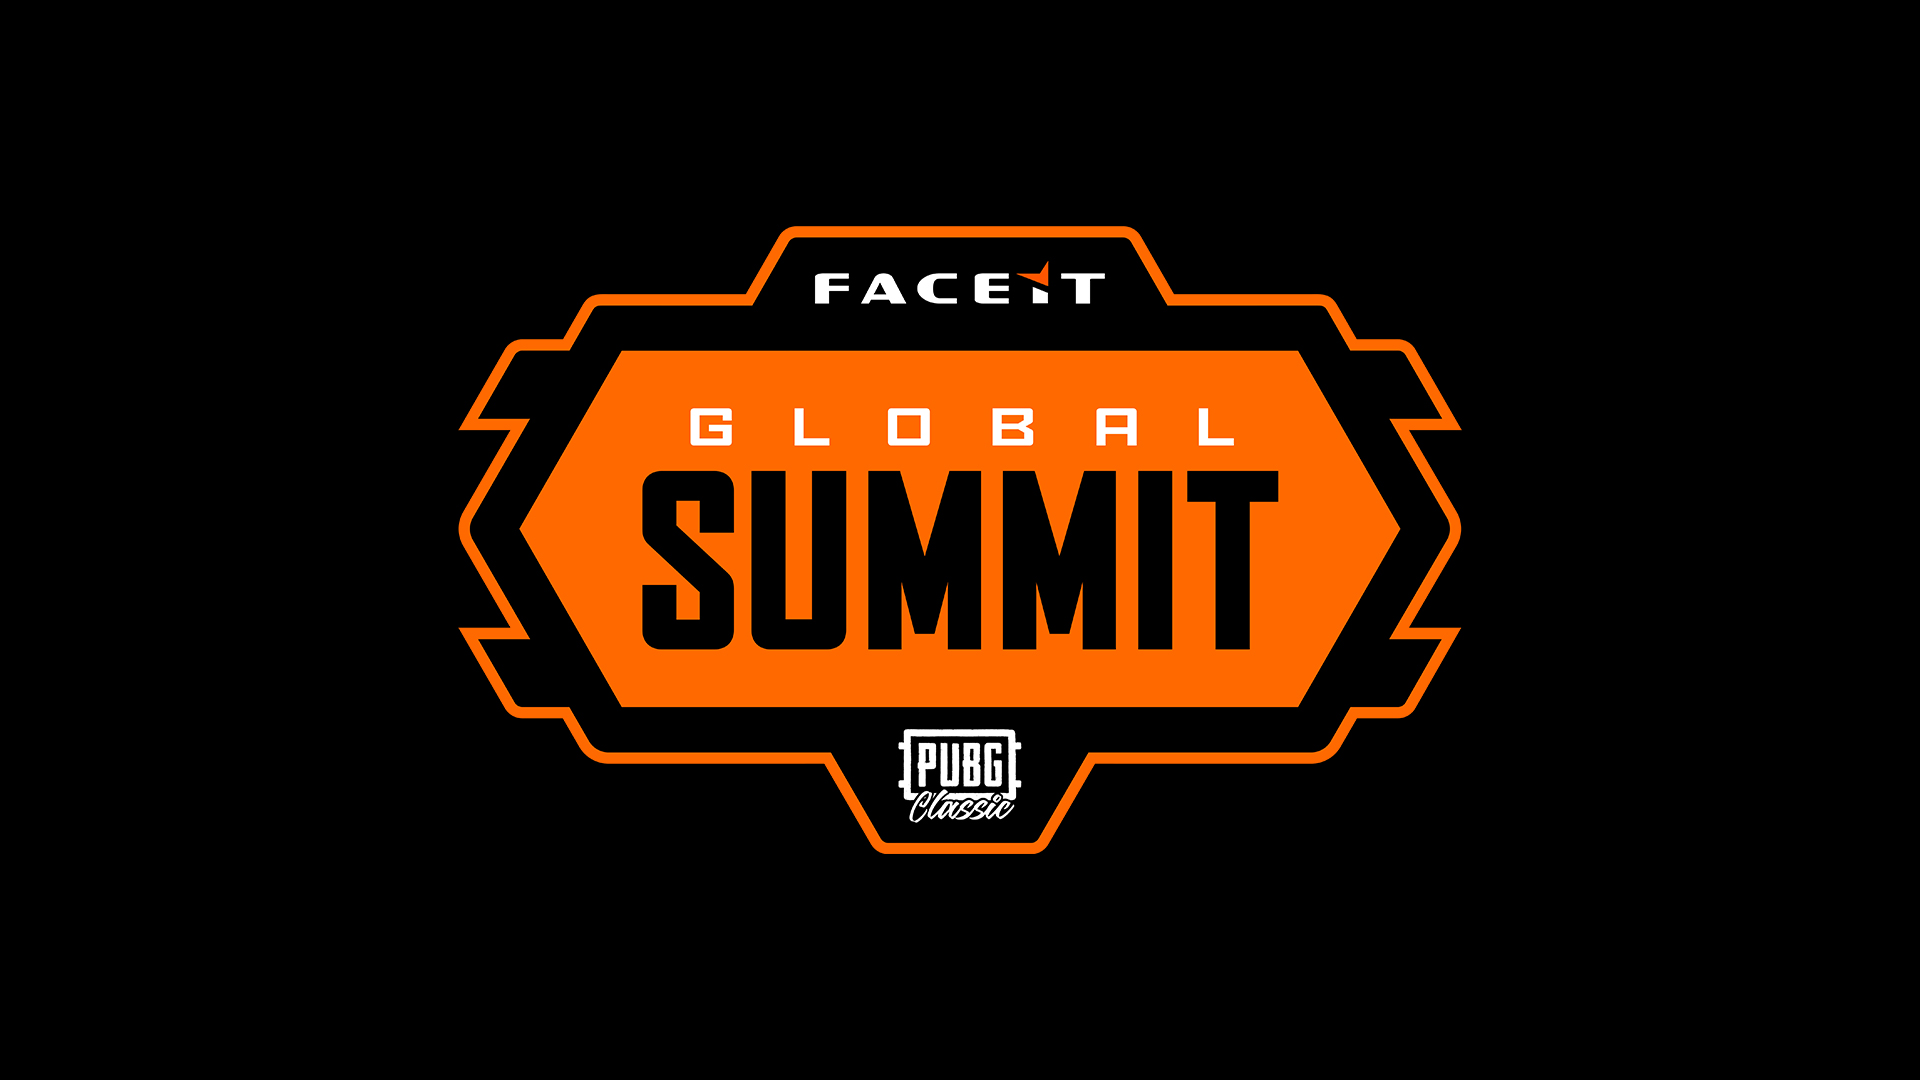 Faceit Global Summit Will Be The First Of Three Pubg Classics Pubg